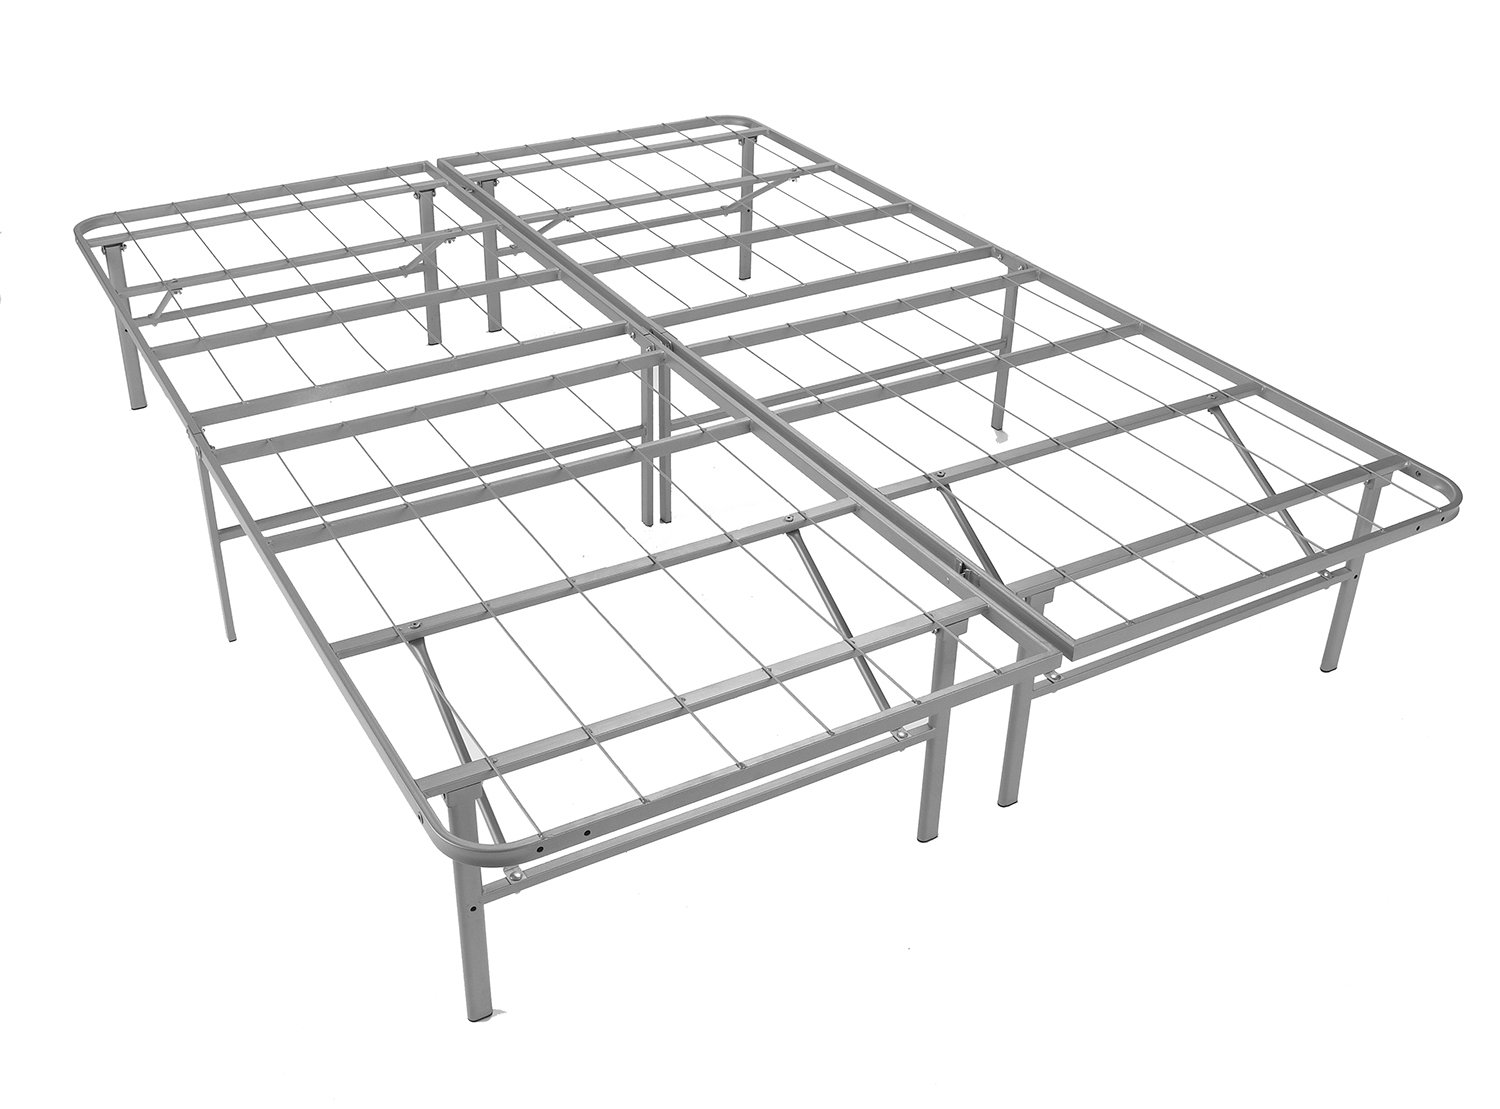 Mantua PB46XL Premium Platform Base in Silver, Fits Full XL Mattress, Replaces Box Spring and Bed Frame, Room for Storage Underneath, No Tools Required